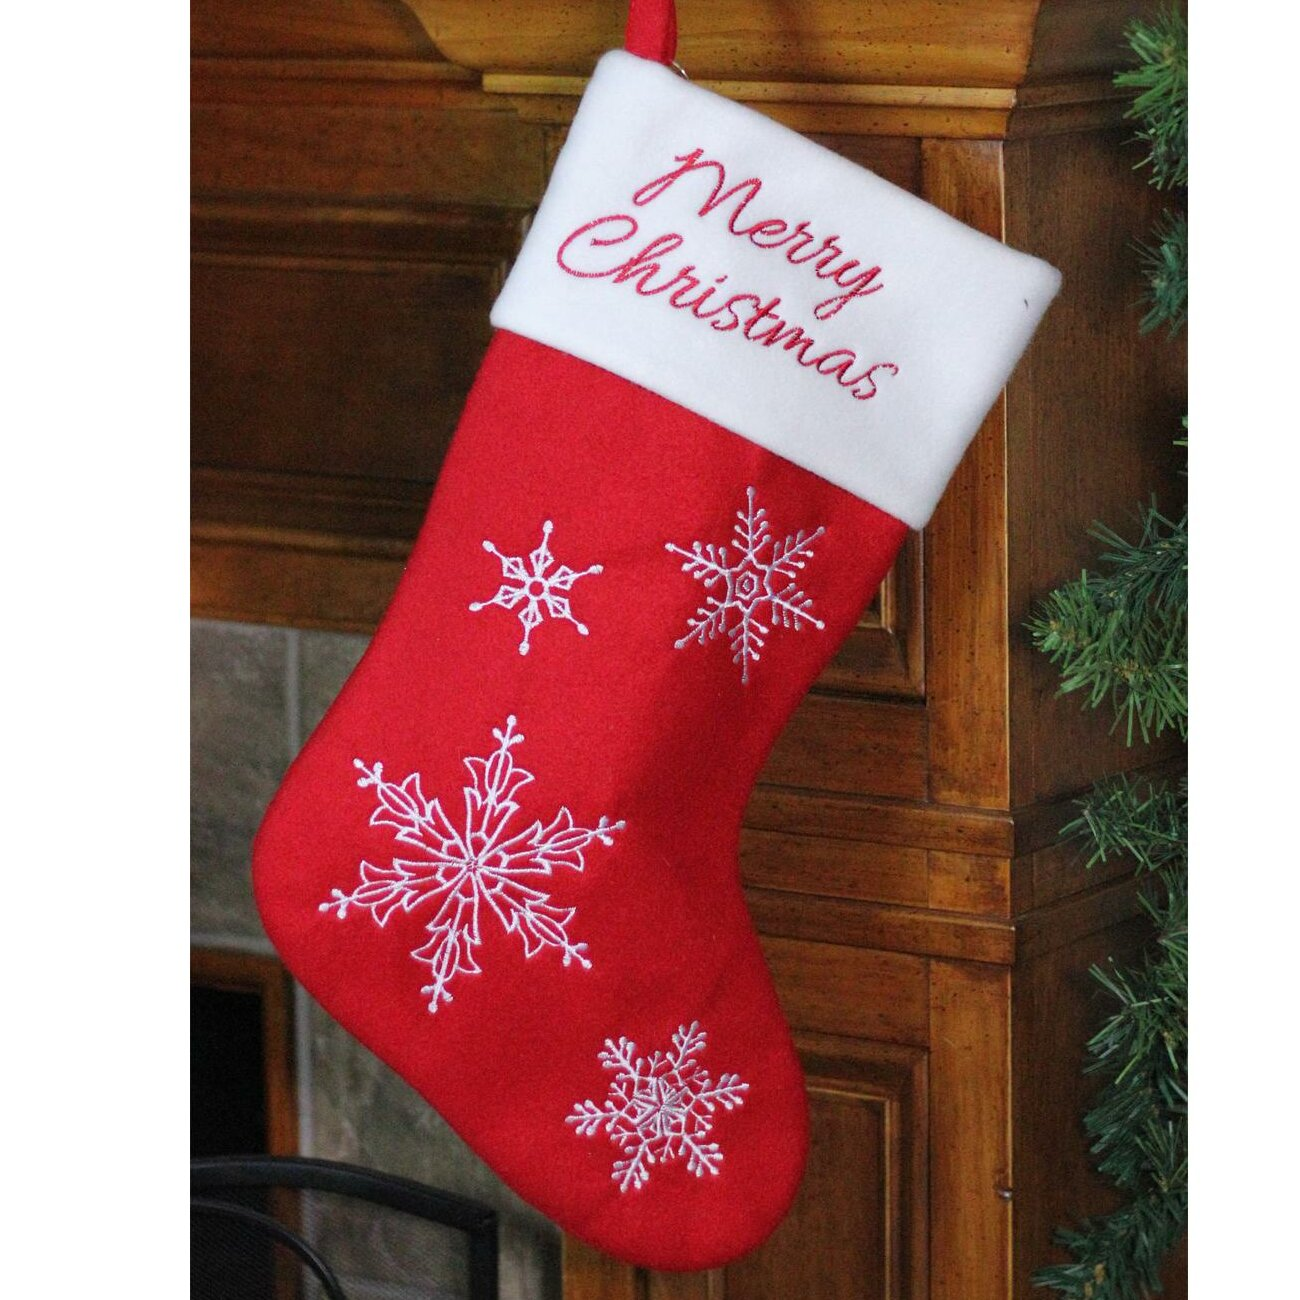 Embroidered Christmas Stockings.Merry Christmas Snowflake Embroidered Christmas Stocking With Fabric Loop